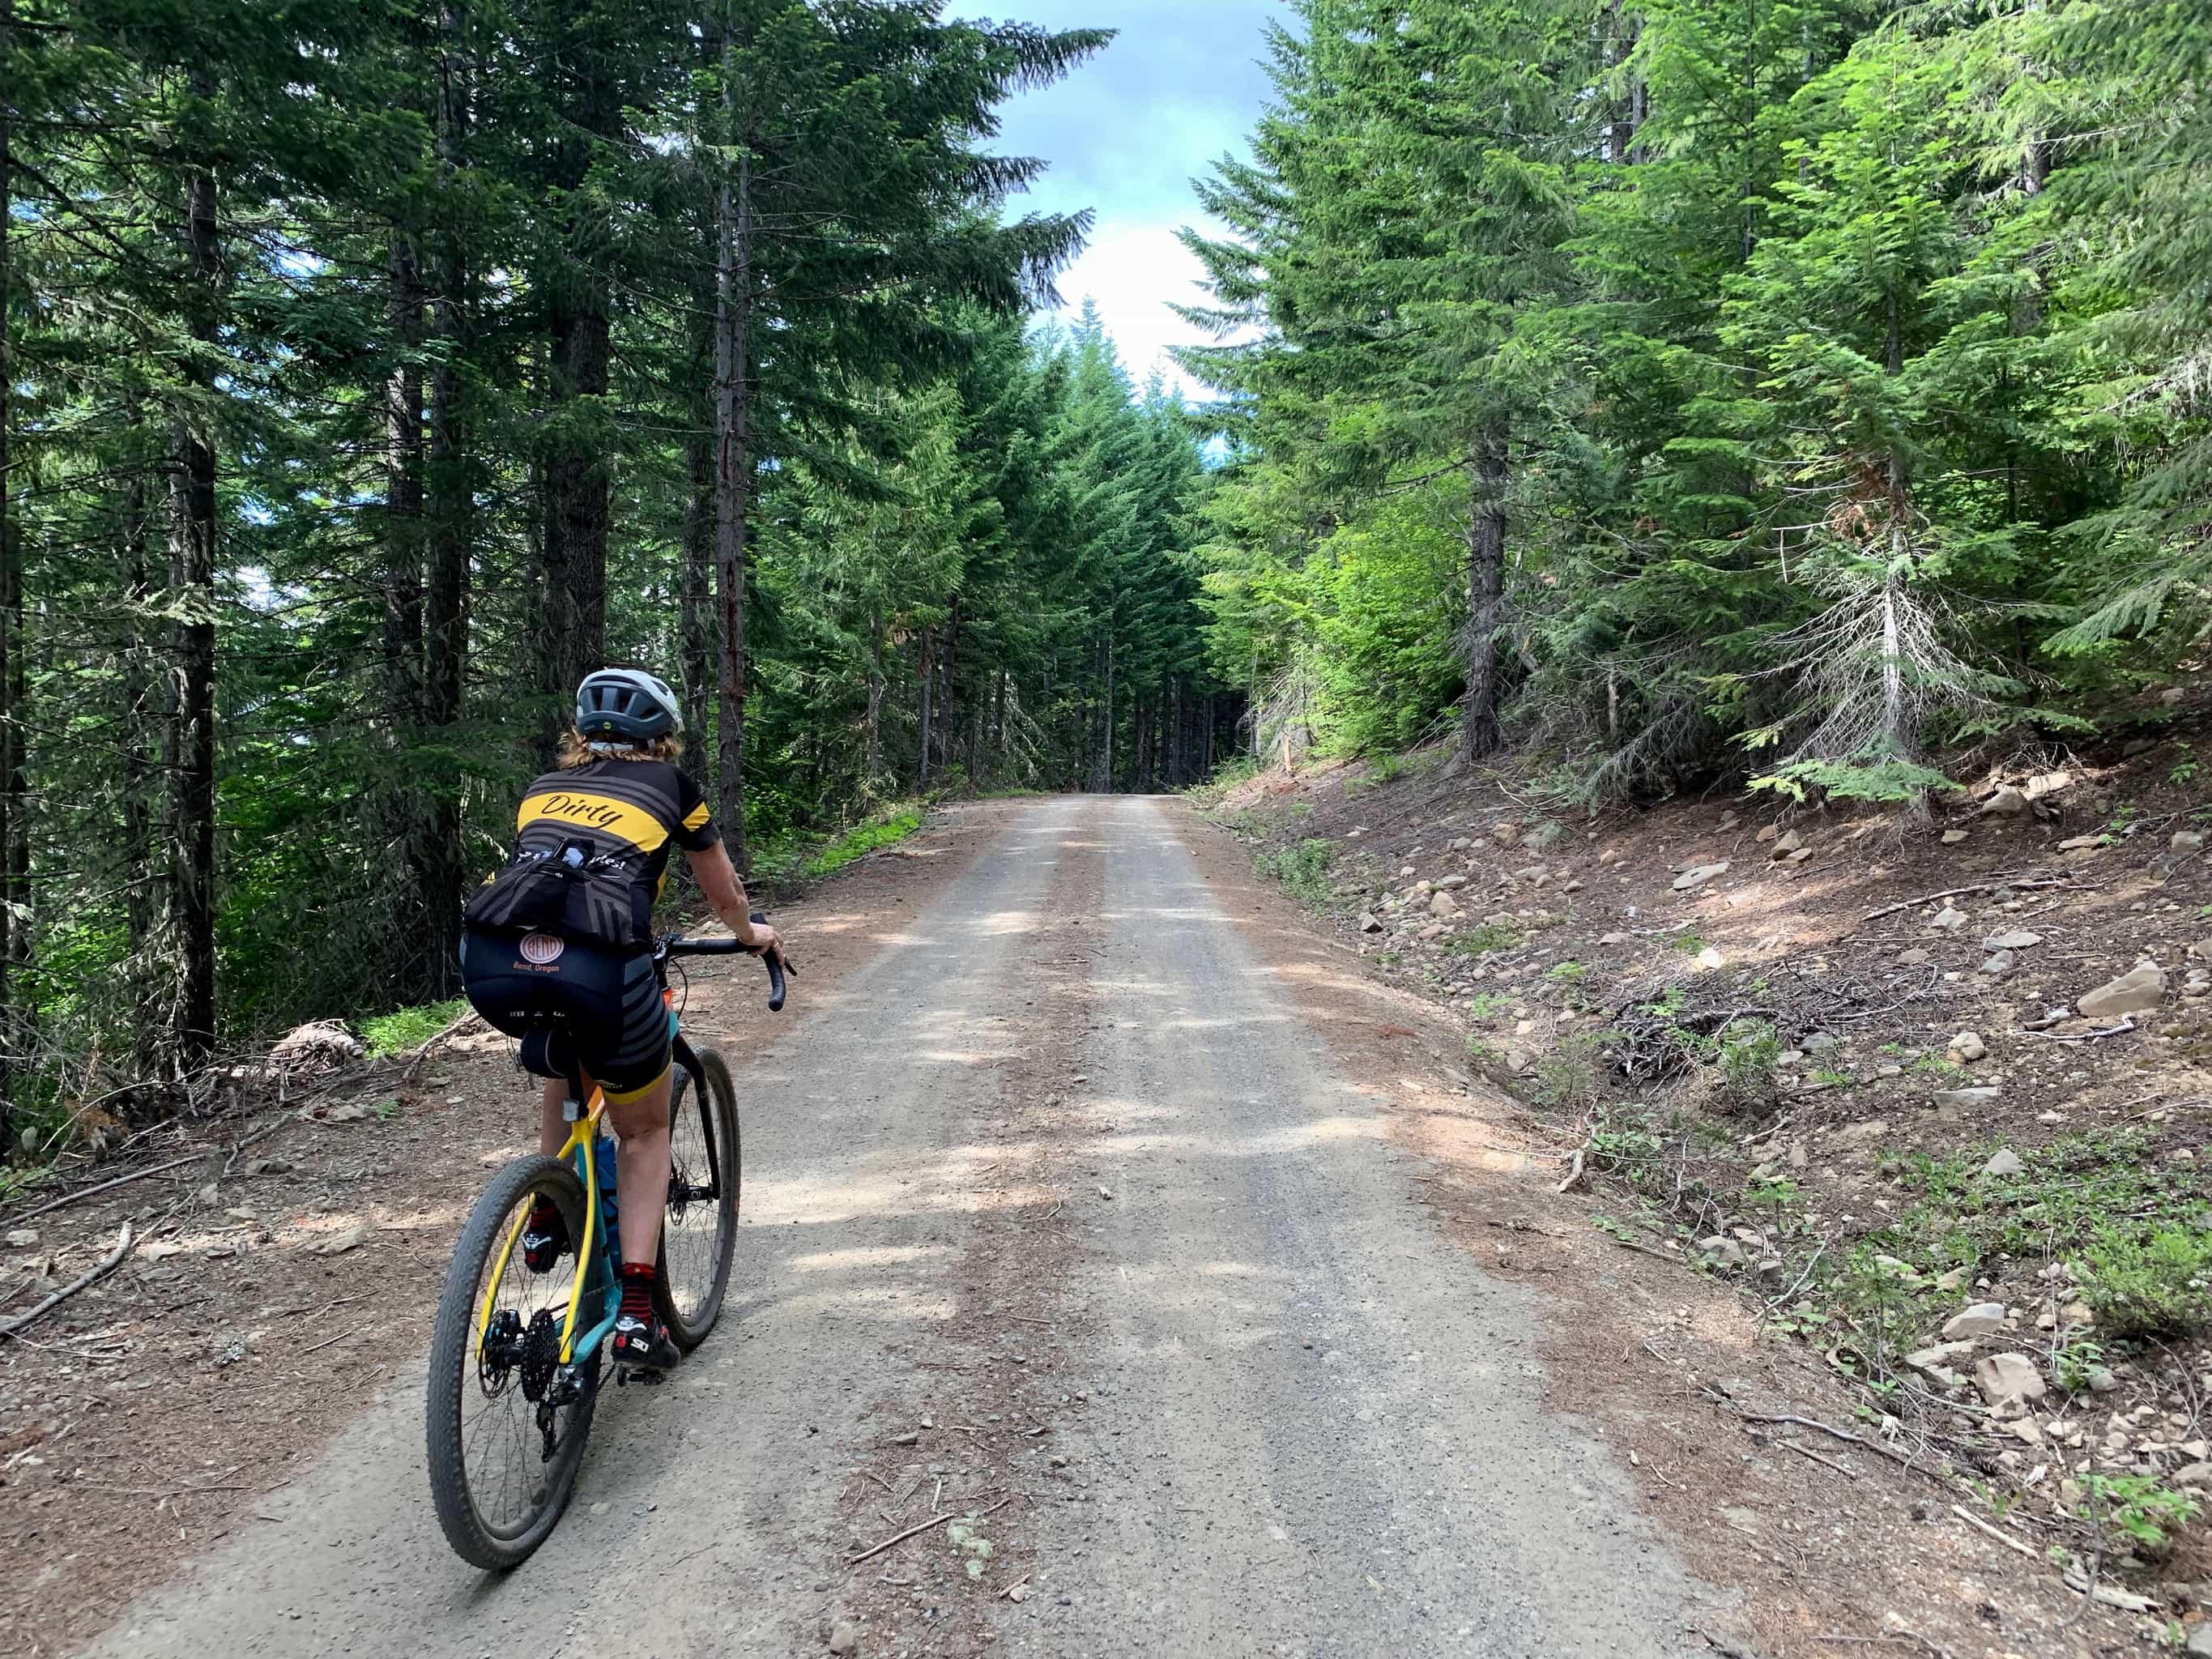 Gravel cyclist on NF-8810 in the Gifford Pinchot National Forest.